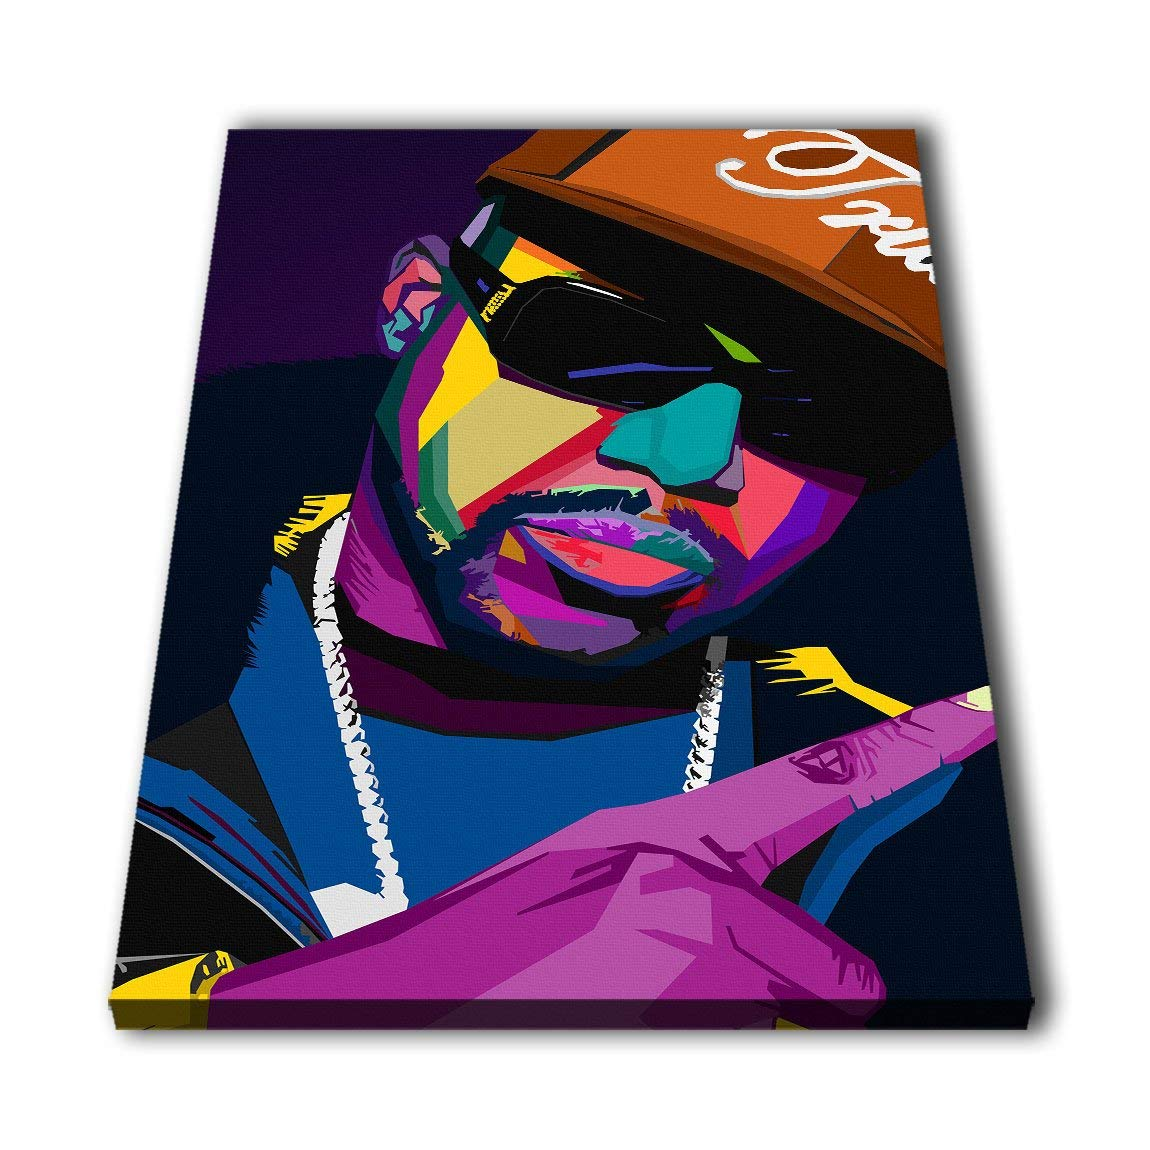 6f45ee2891b4 Susu Art - Pimp C Rapper WPAP Limited V.s Canvas Giclee Print Painting  Picture Wall WPAP Pop Art Home Decor Gifts (with Framed, Size 1: 12x18inch.)